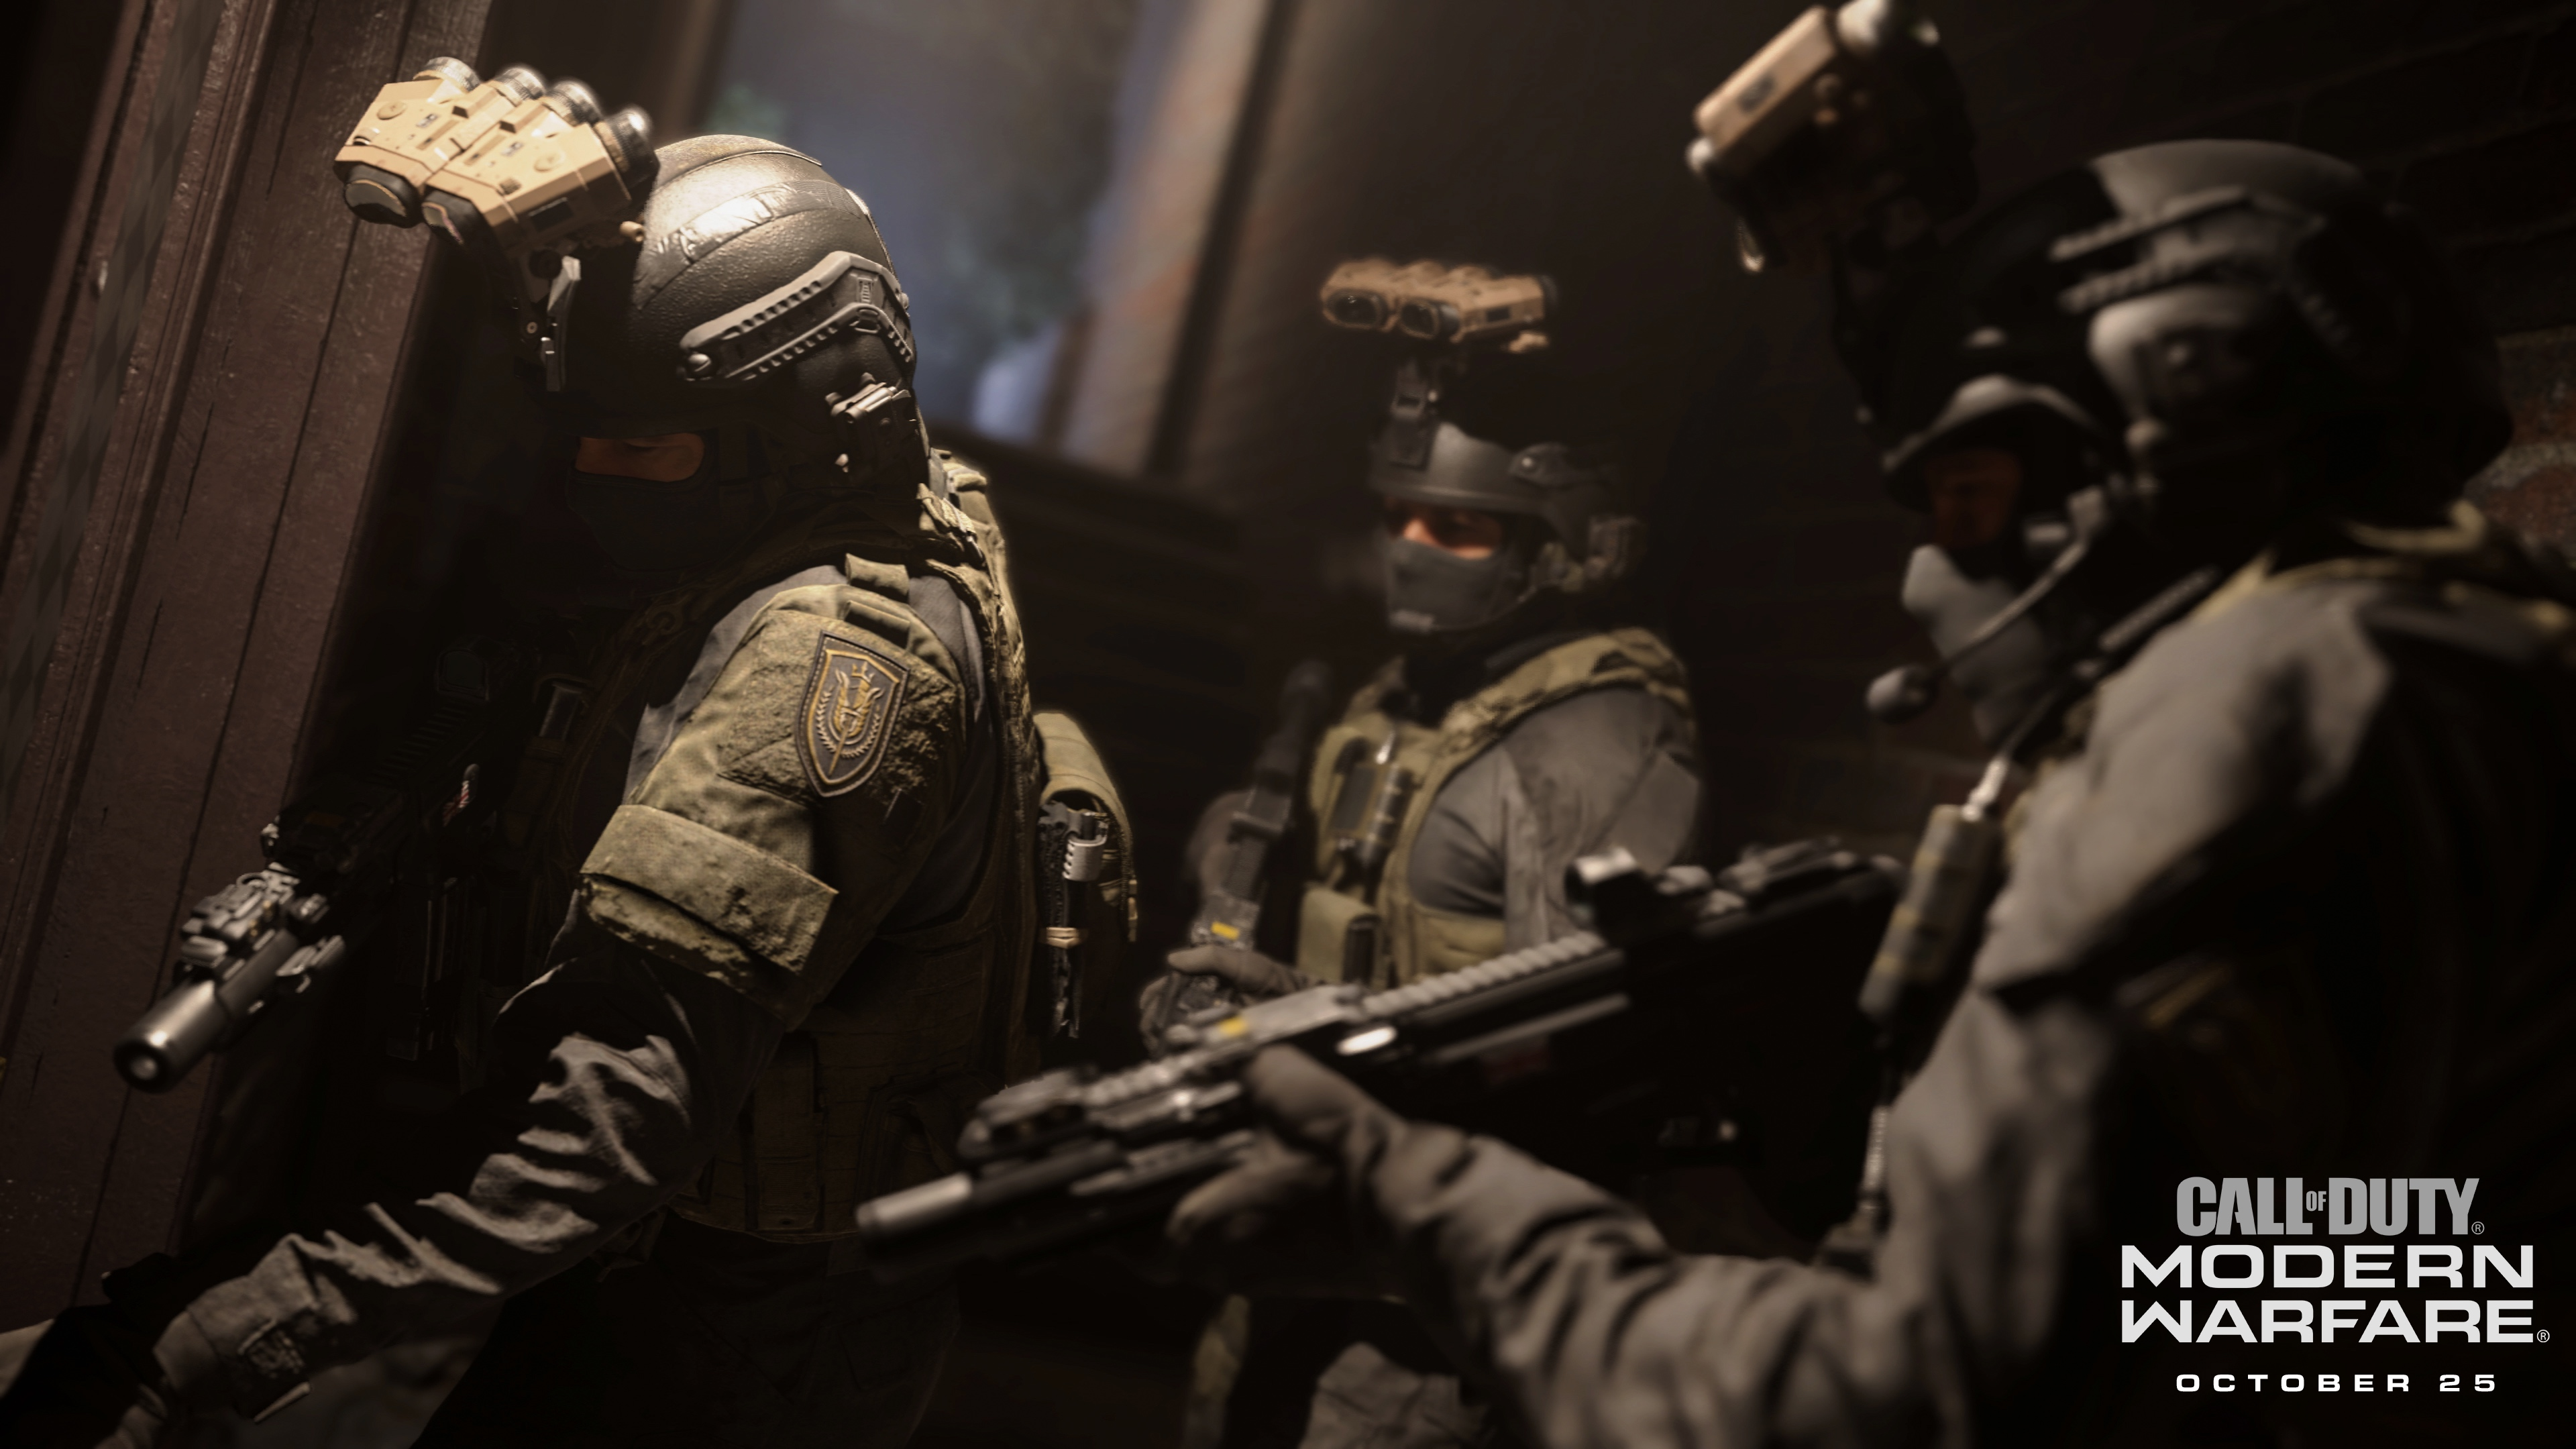 Call of Duty: Modern Warfare pushes realism, but draws the line at chemical weapons